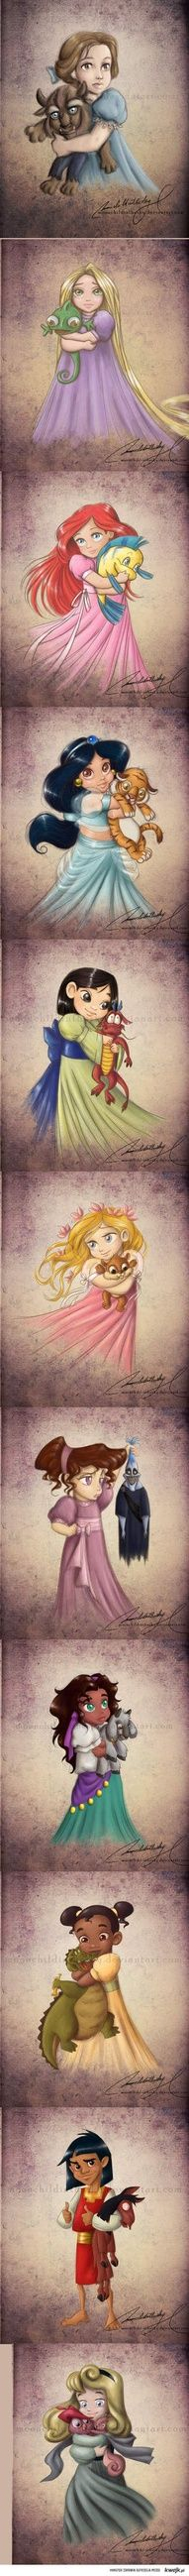 Ain't they cute! Tiny Disney princesses ^^ Here's a list of who's